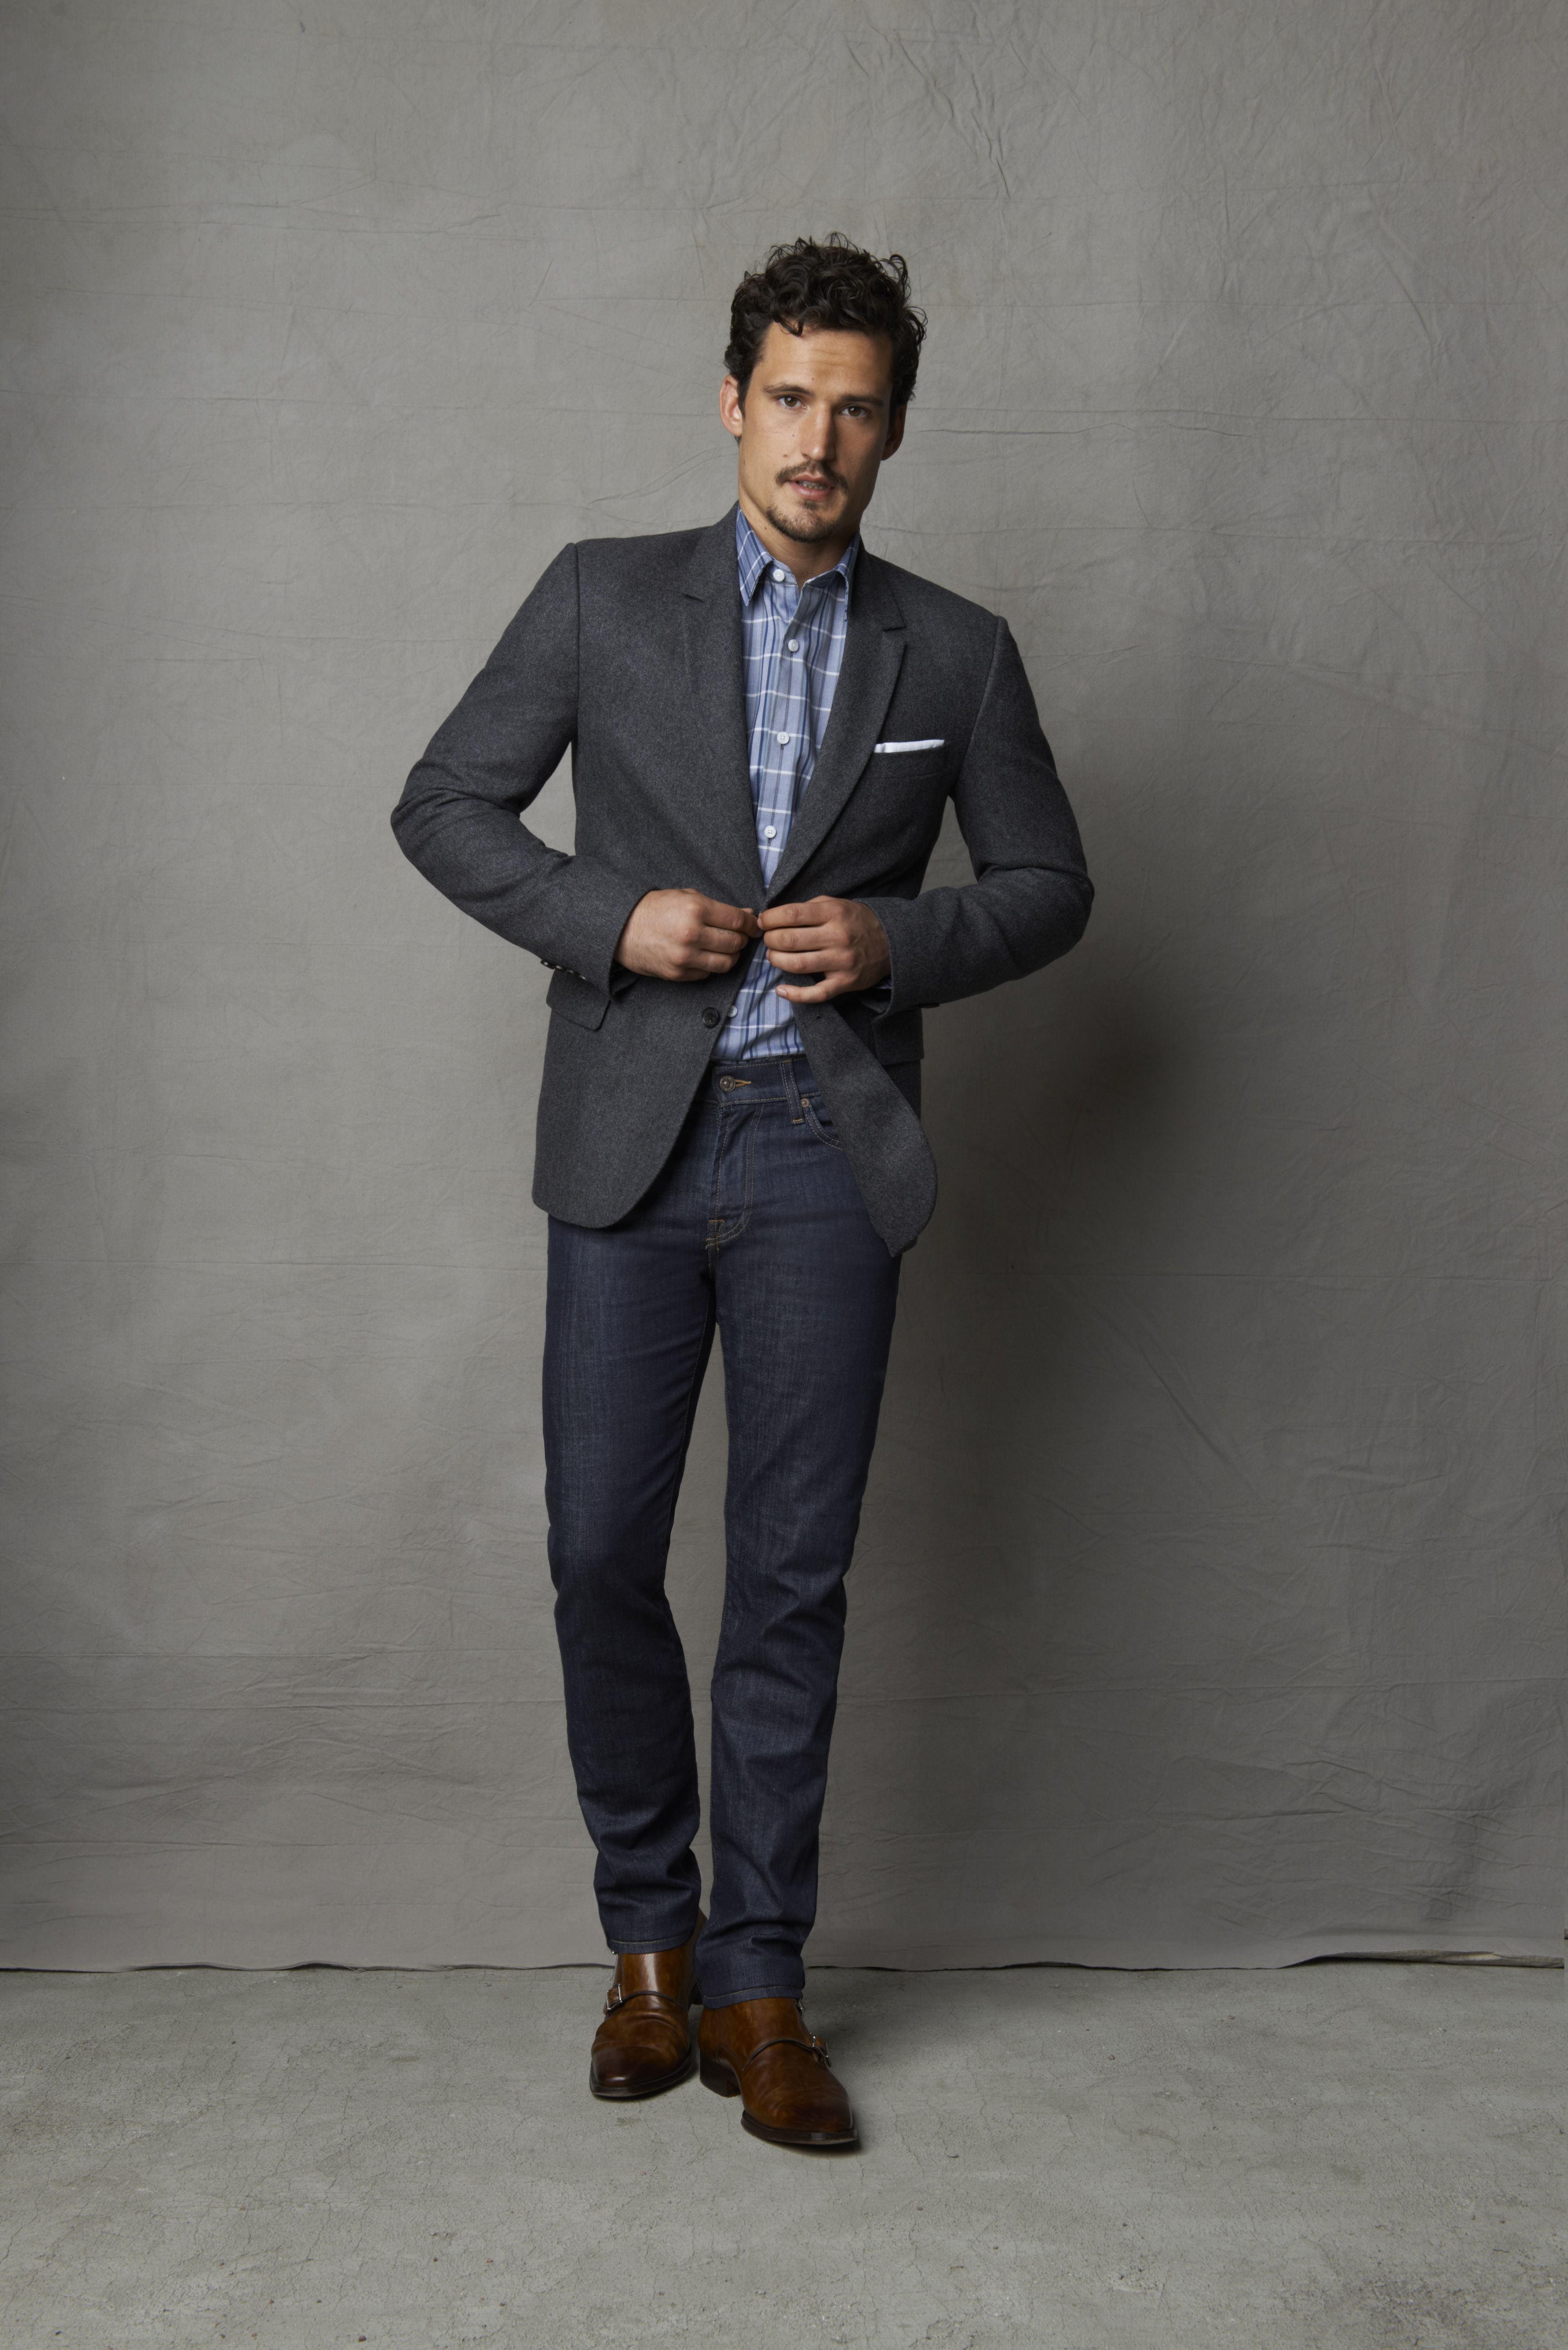 Style tip Dressup denim by adding a sportcoat. Perfect